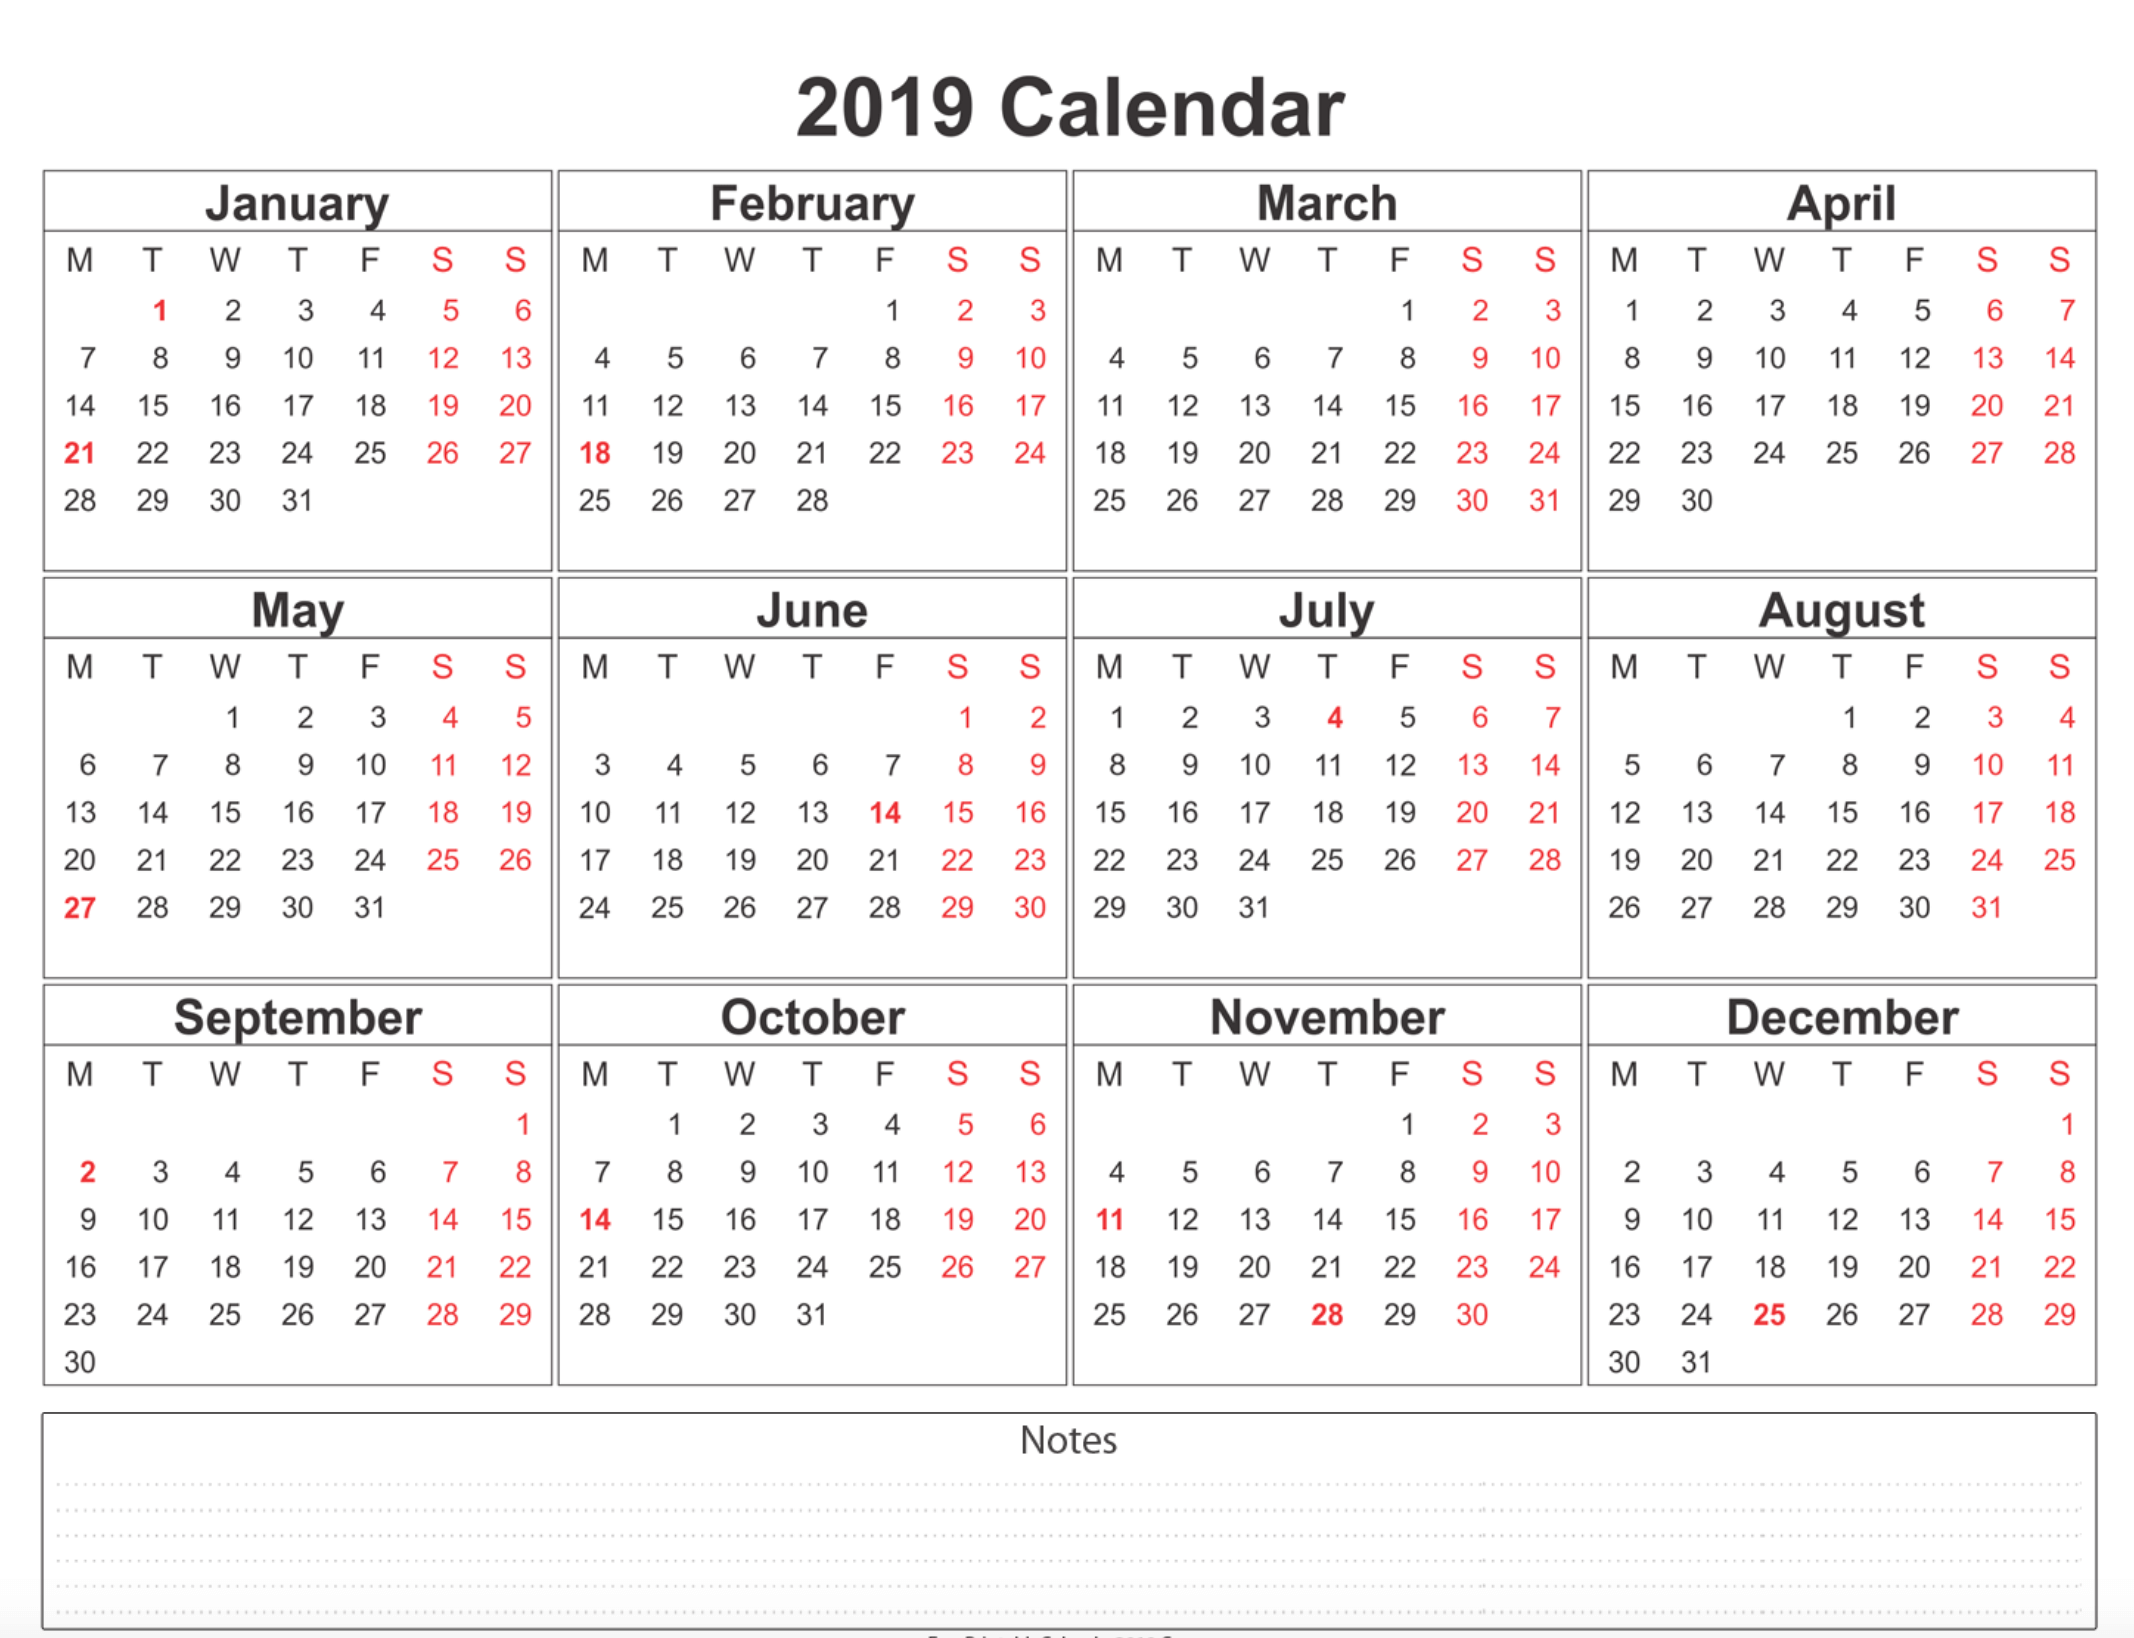 Free Printable Calendar 2019 With Holidays Blank 12 Month Calendar